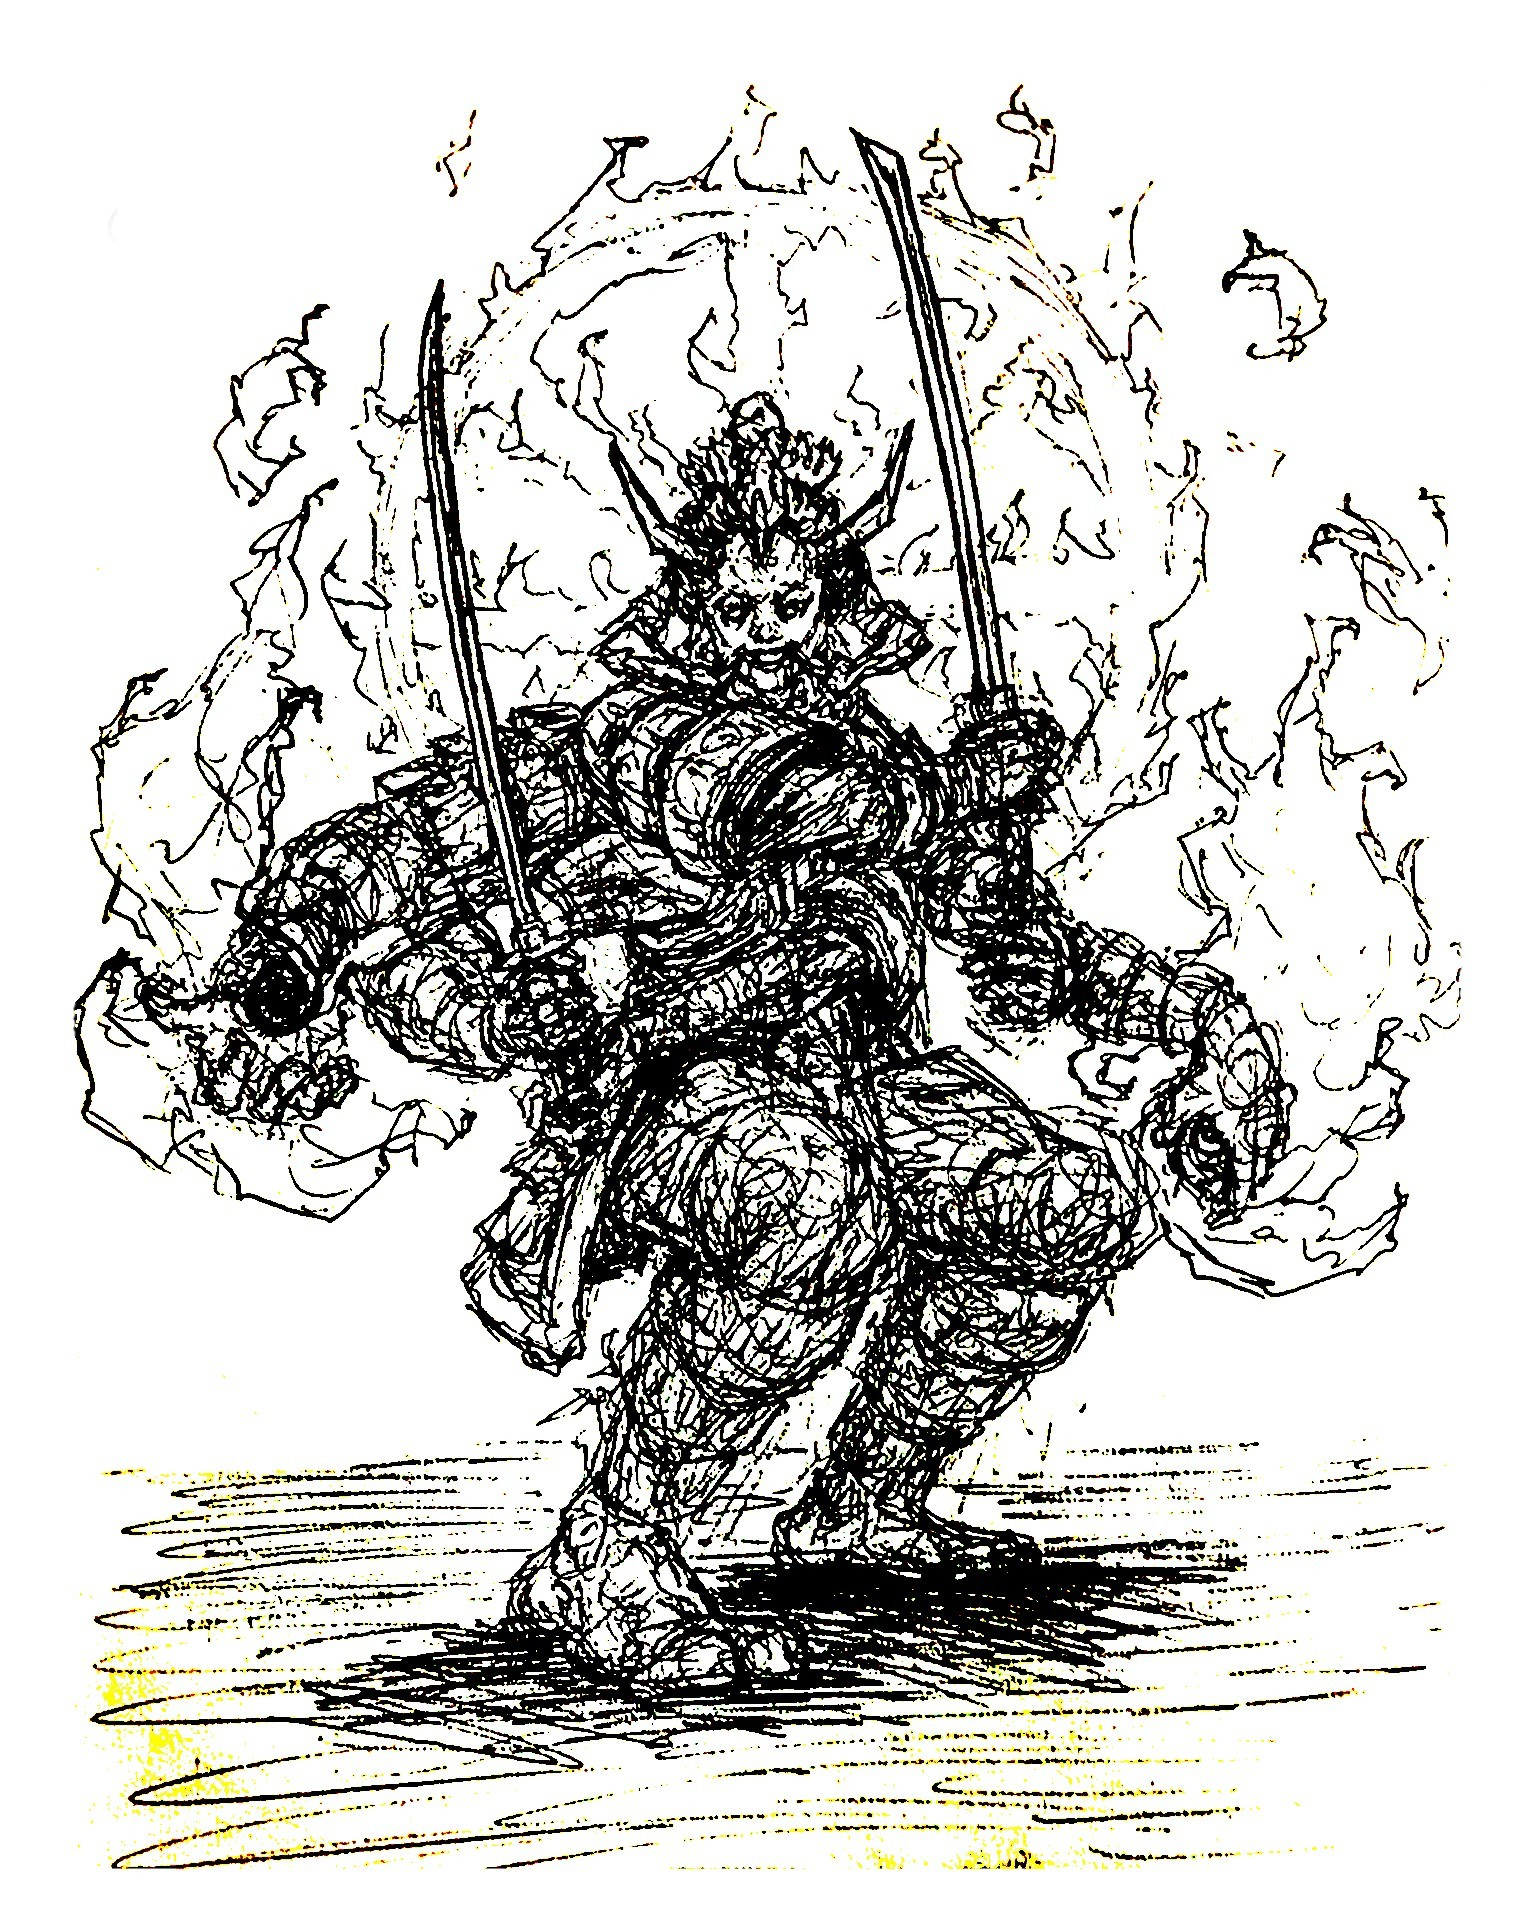 Samurai Ink Sketch